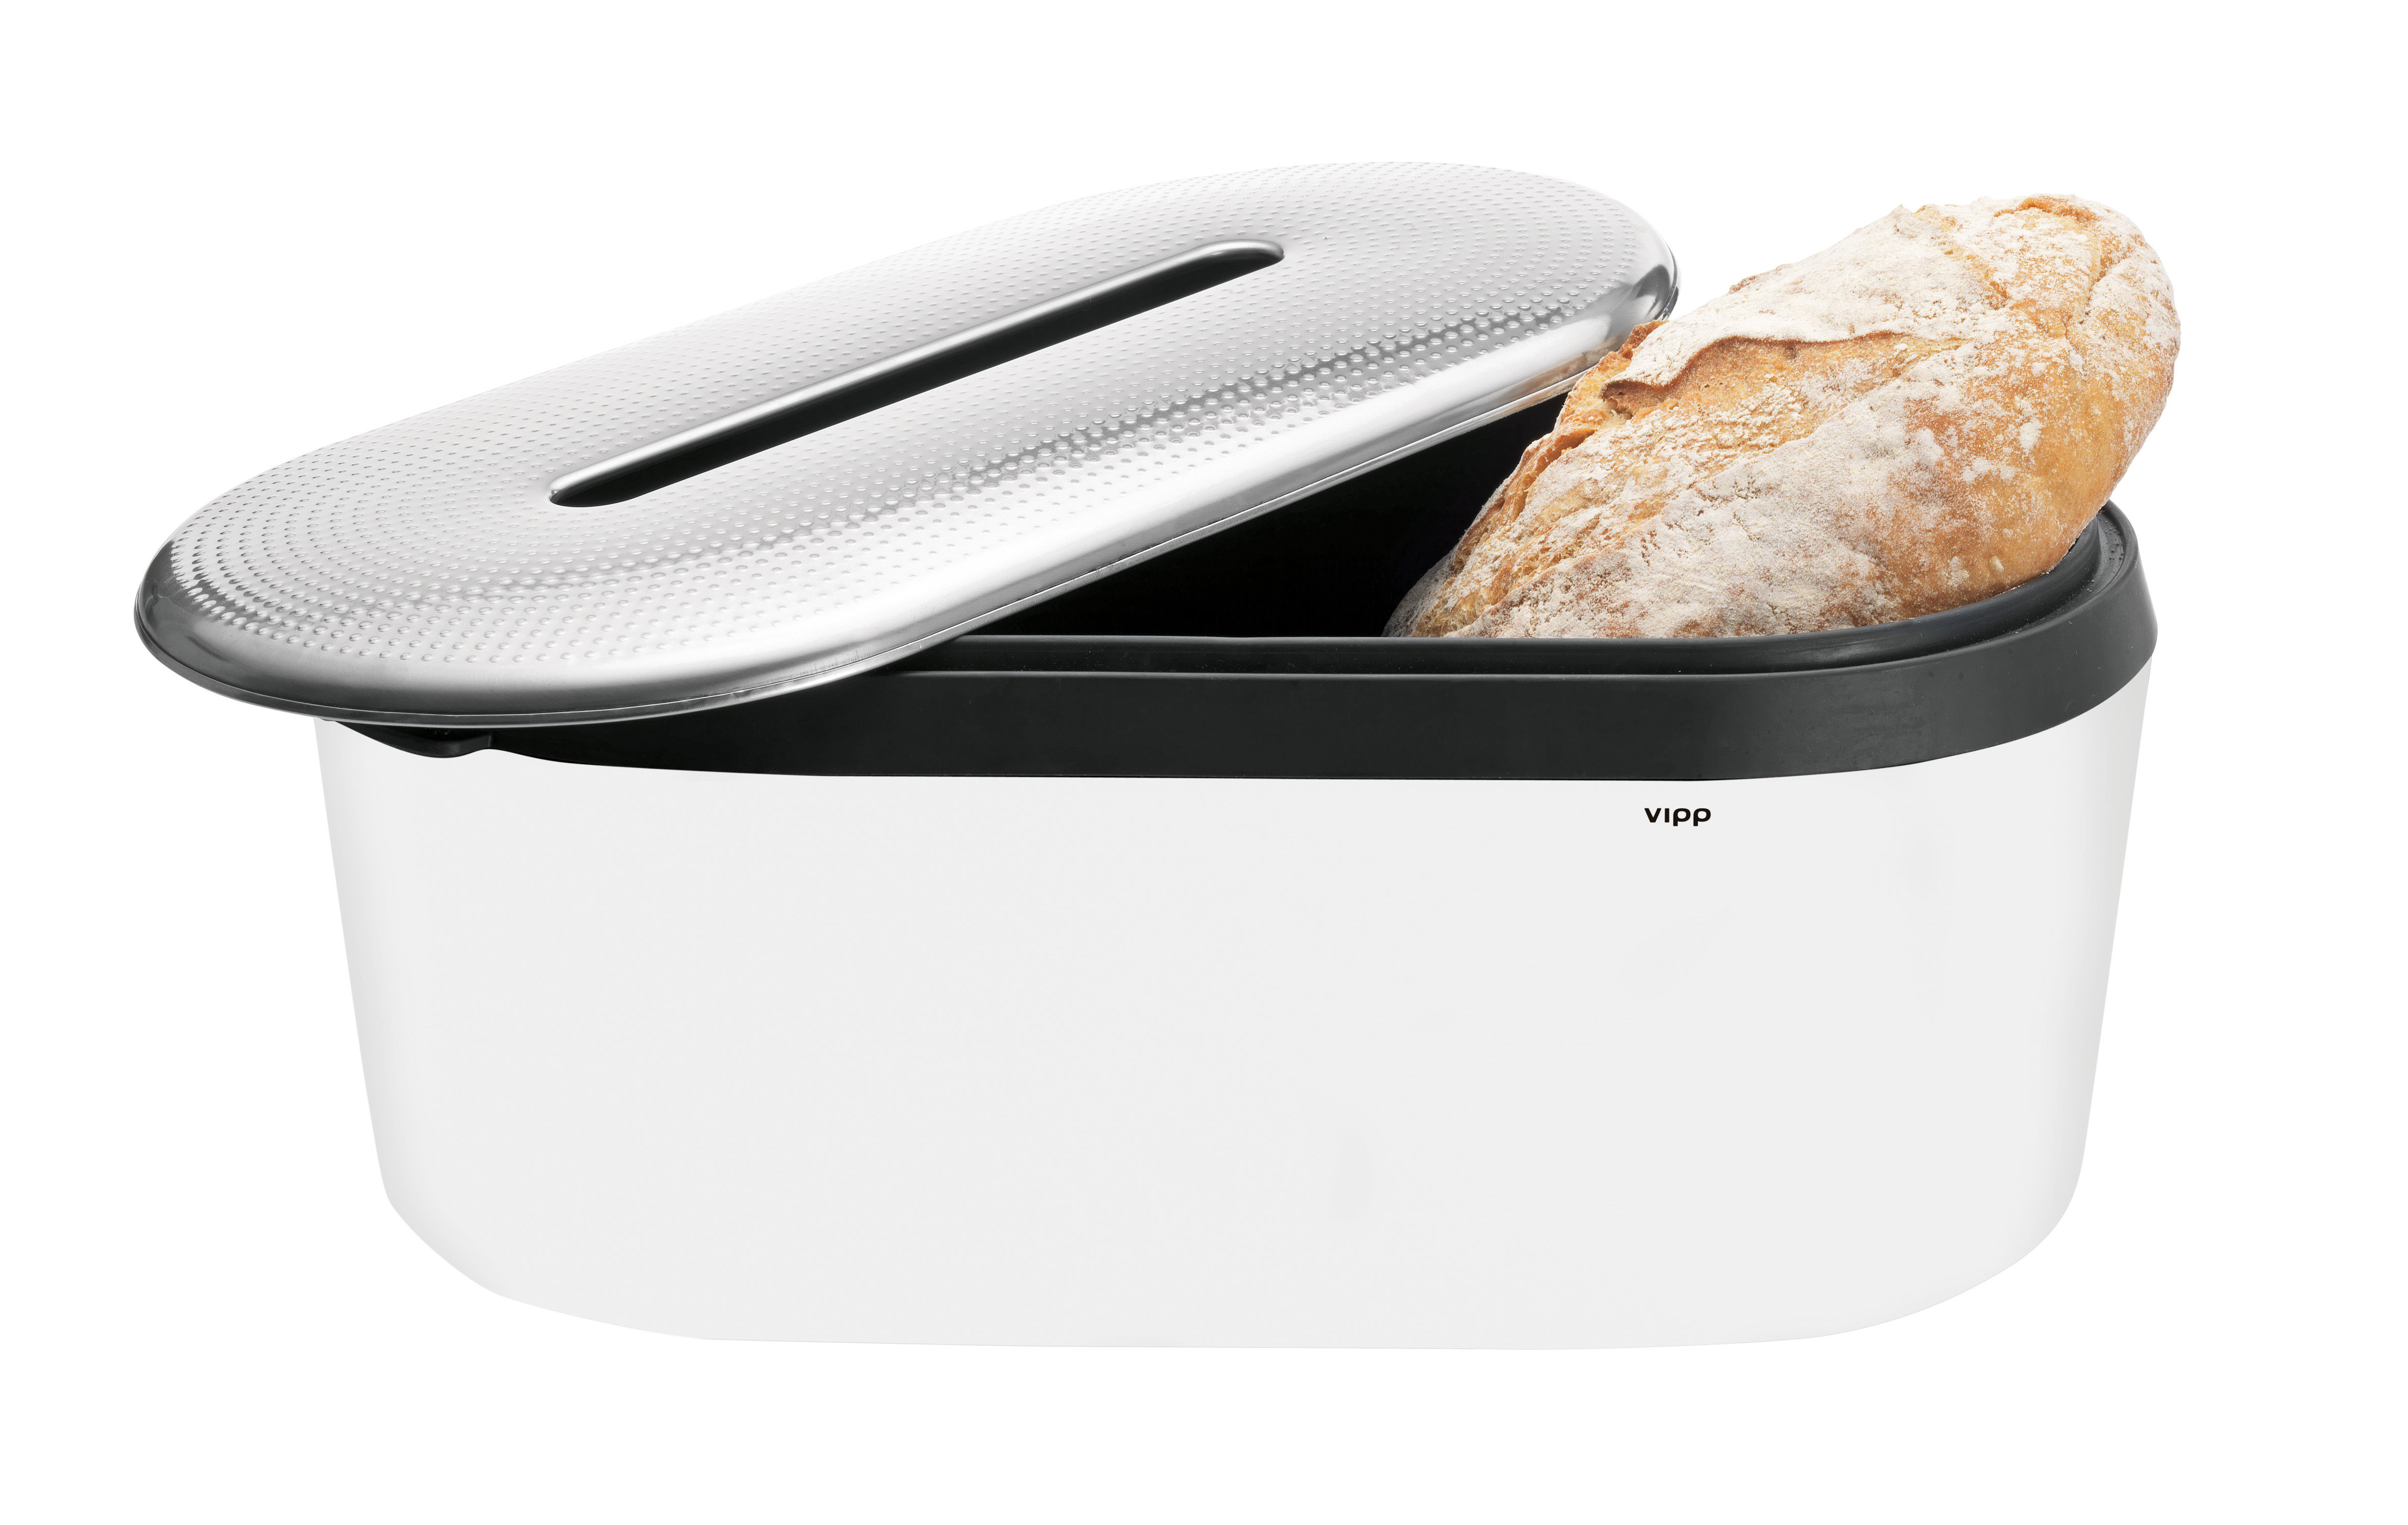 Tableware - Fruit Bowls & Centrepieces - Vipp 270 Bread box - Breadbox by Vipp - White - Cotton, Rubber, Stainless steel